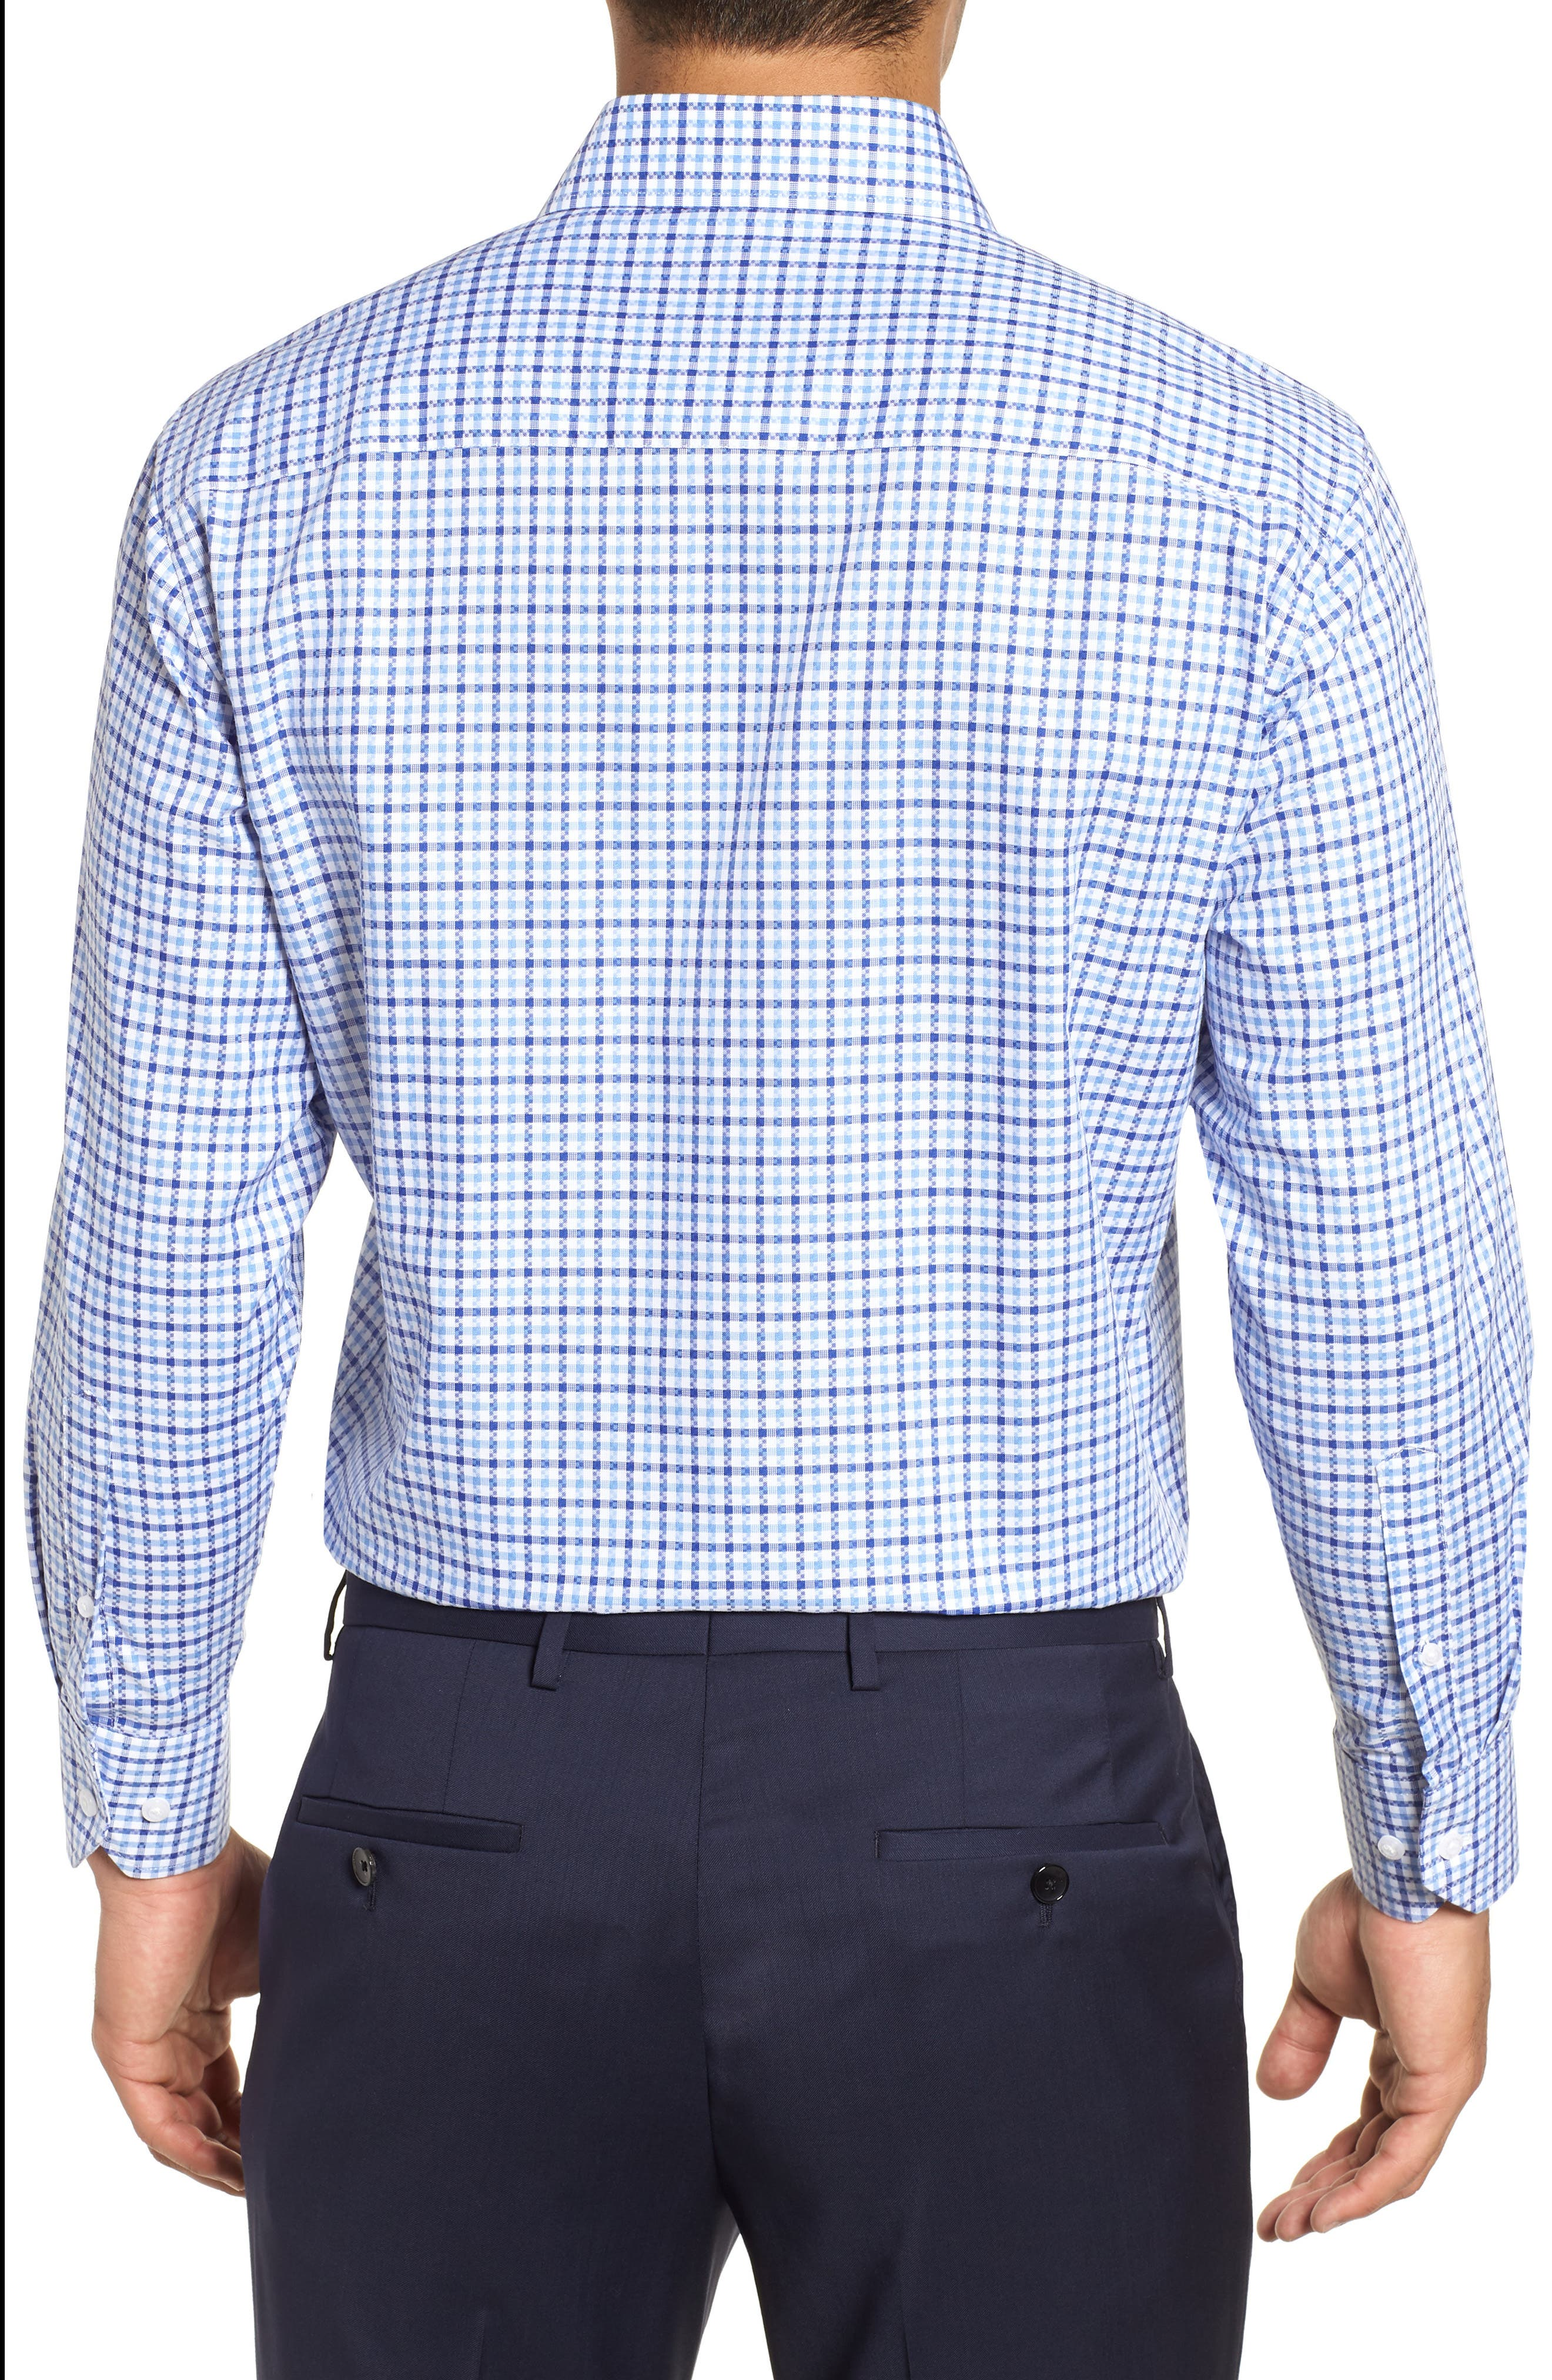 Regular Fit Check Dress Shirt,                             Alternate thumbnail 3, color,                             BLUE